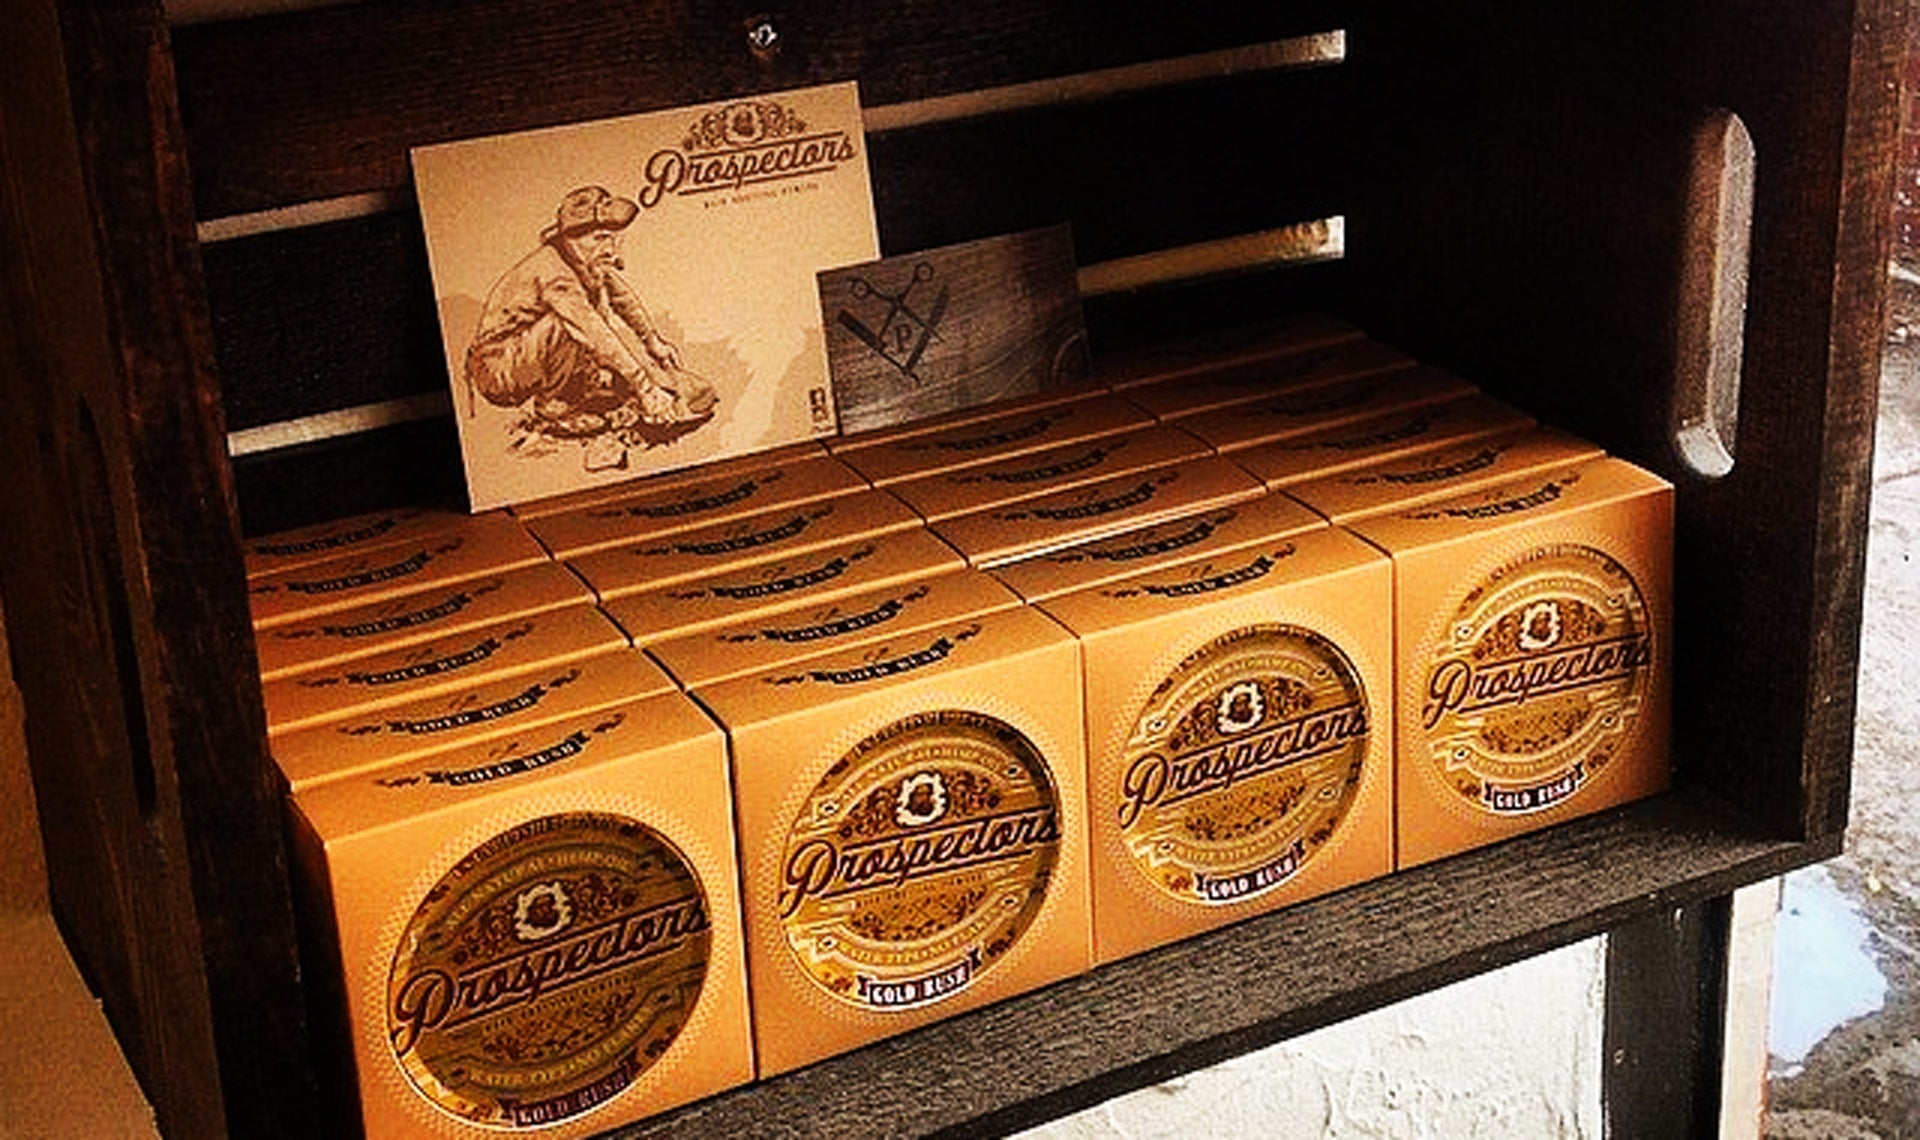 Prospectors Gold Rush Pomade displayed at Pipers Parlor Barbershop